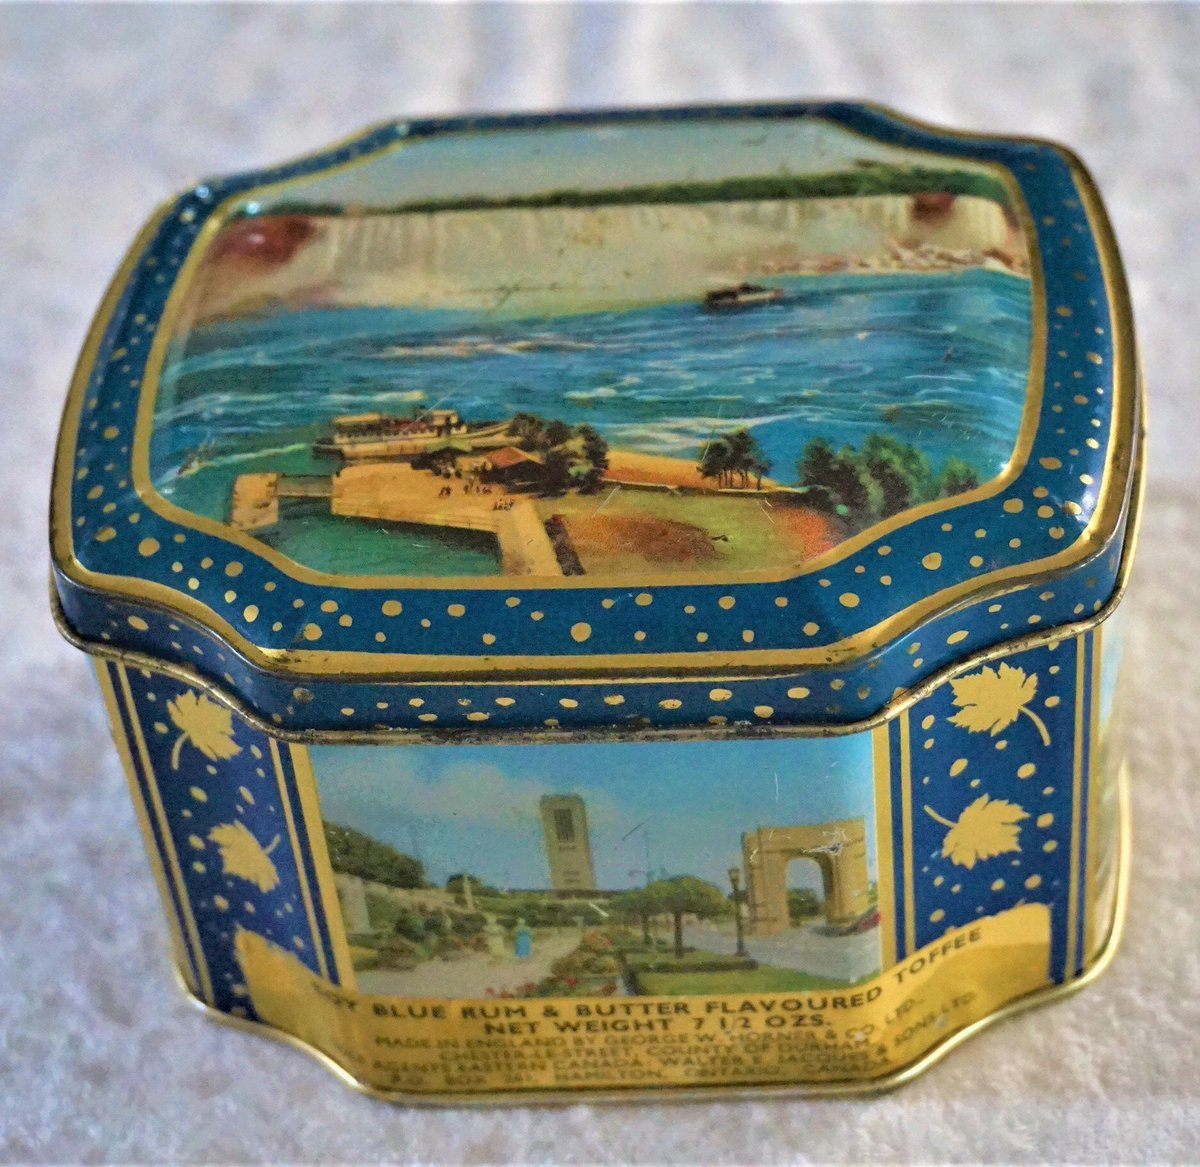 Excited to share the latest addition to my #etsy shop: Vintage Boy Blue Rum & Butter Candy Tin, Collectible Souvenir Niagara Falls Rare Find Unique Home Decor Gift For Her, Same Day Free Shipping  #blue #birthday #mothersday #gold #collectiblesou